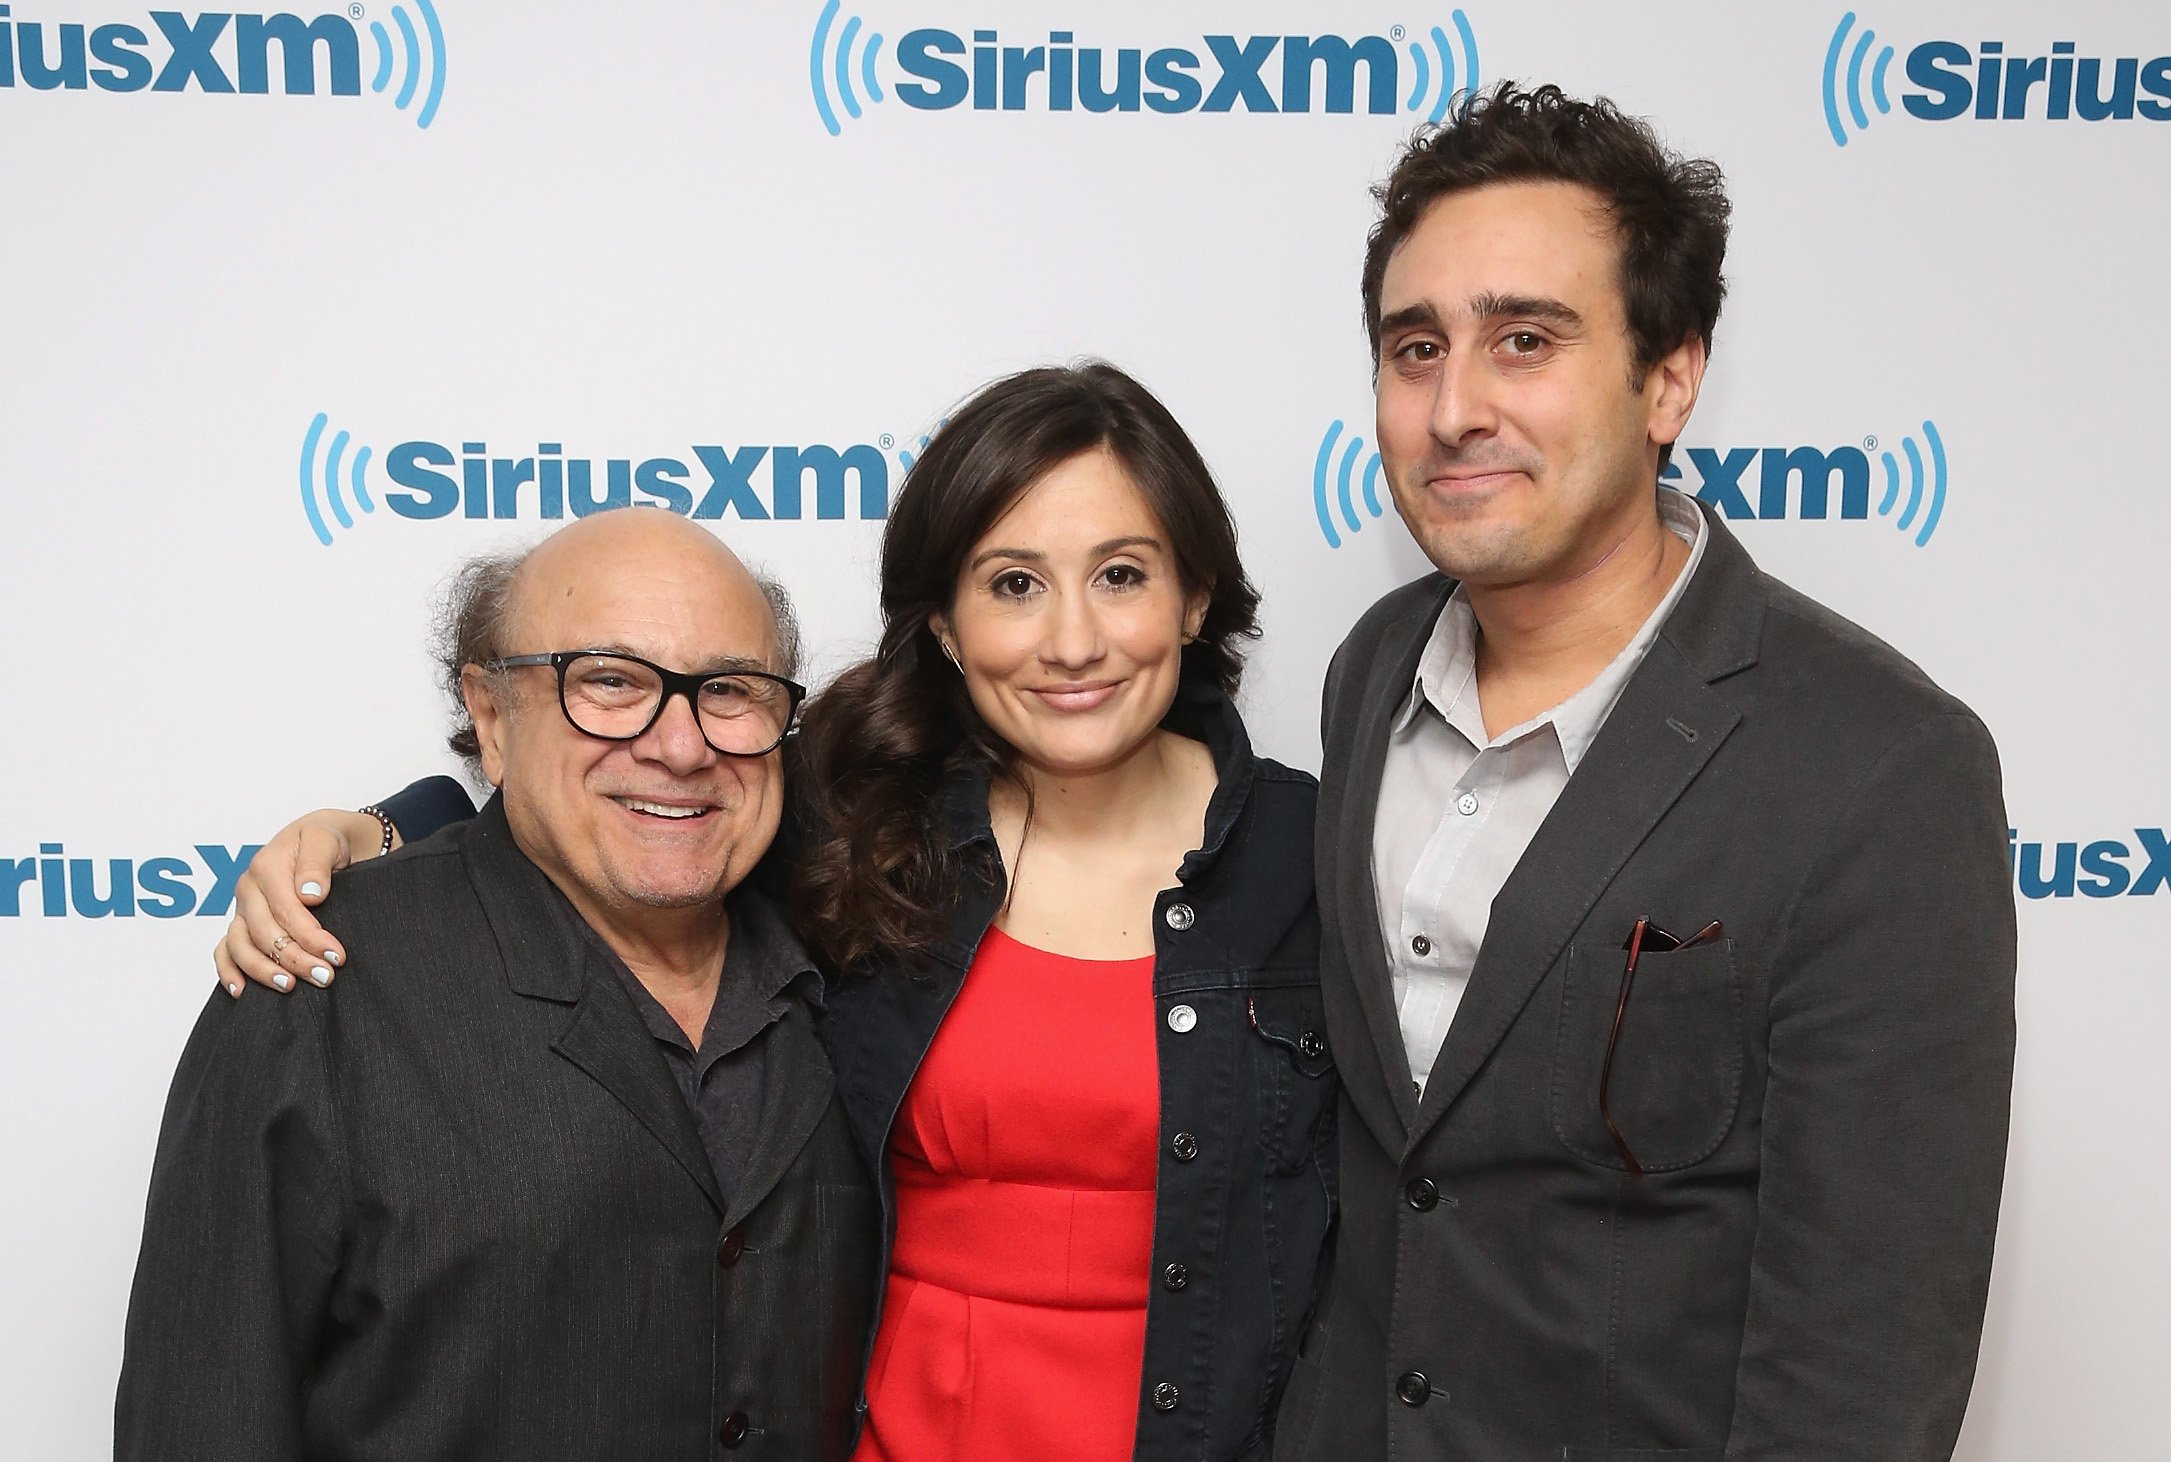 Image Source: Getty Images/Danny DeVito with his children